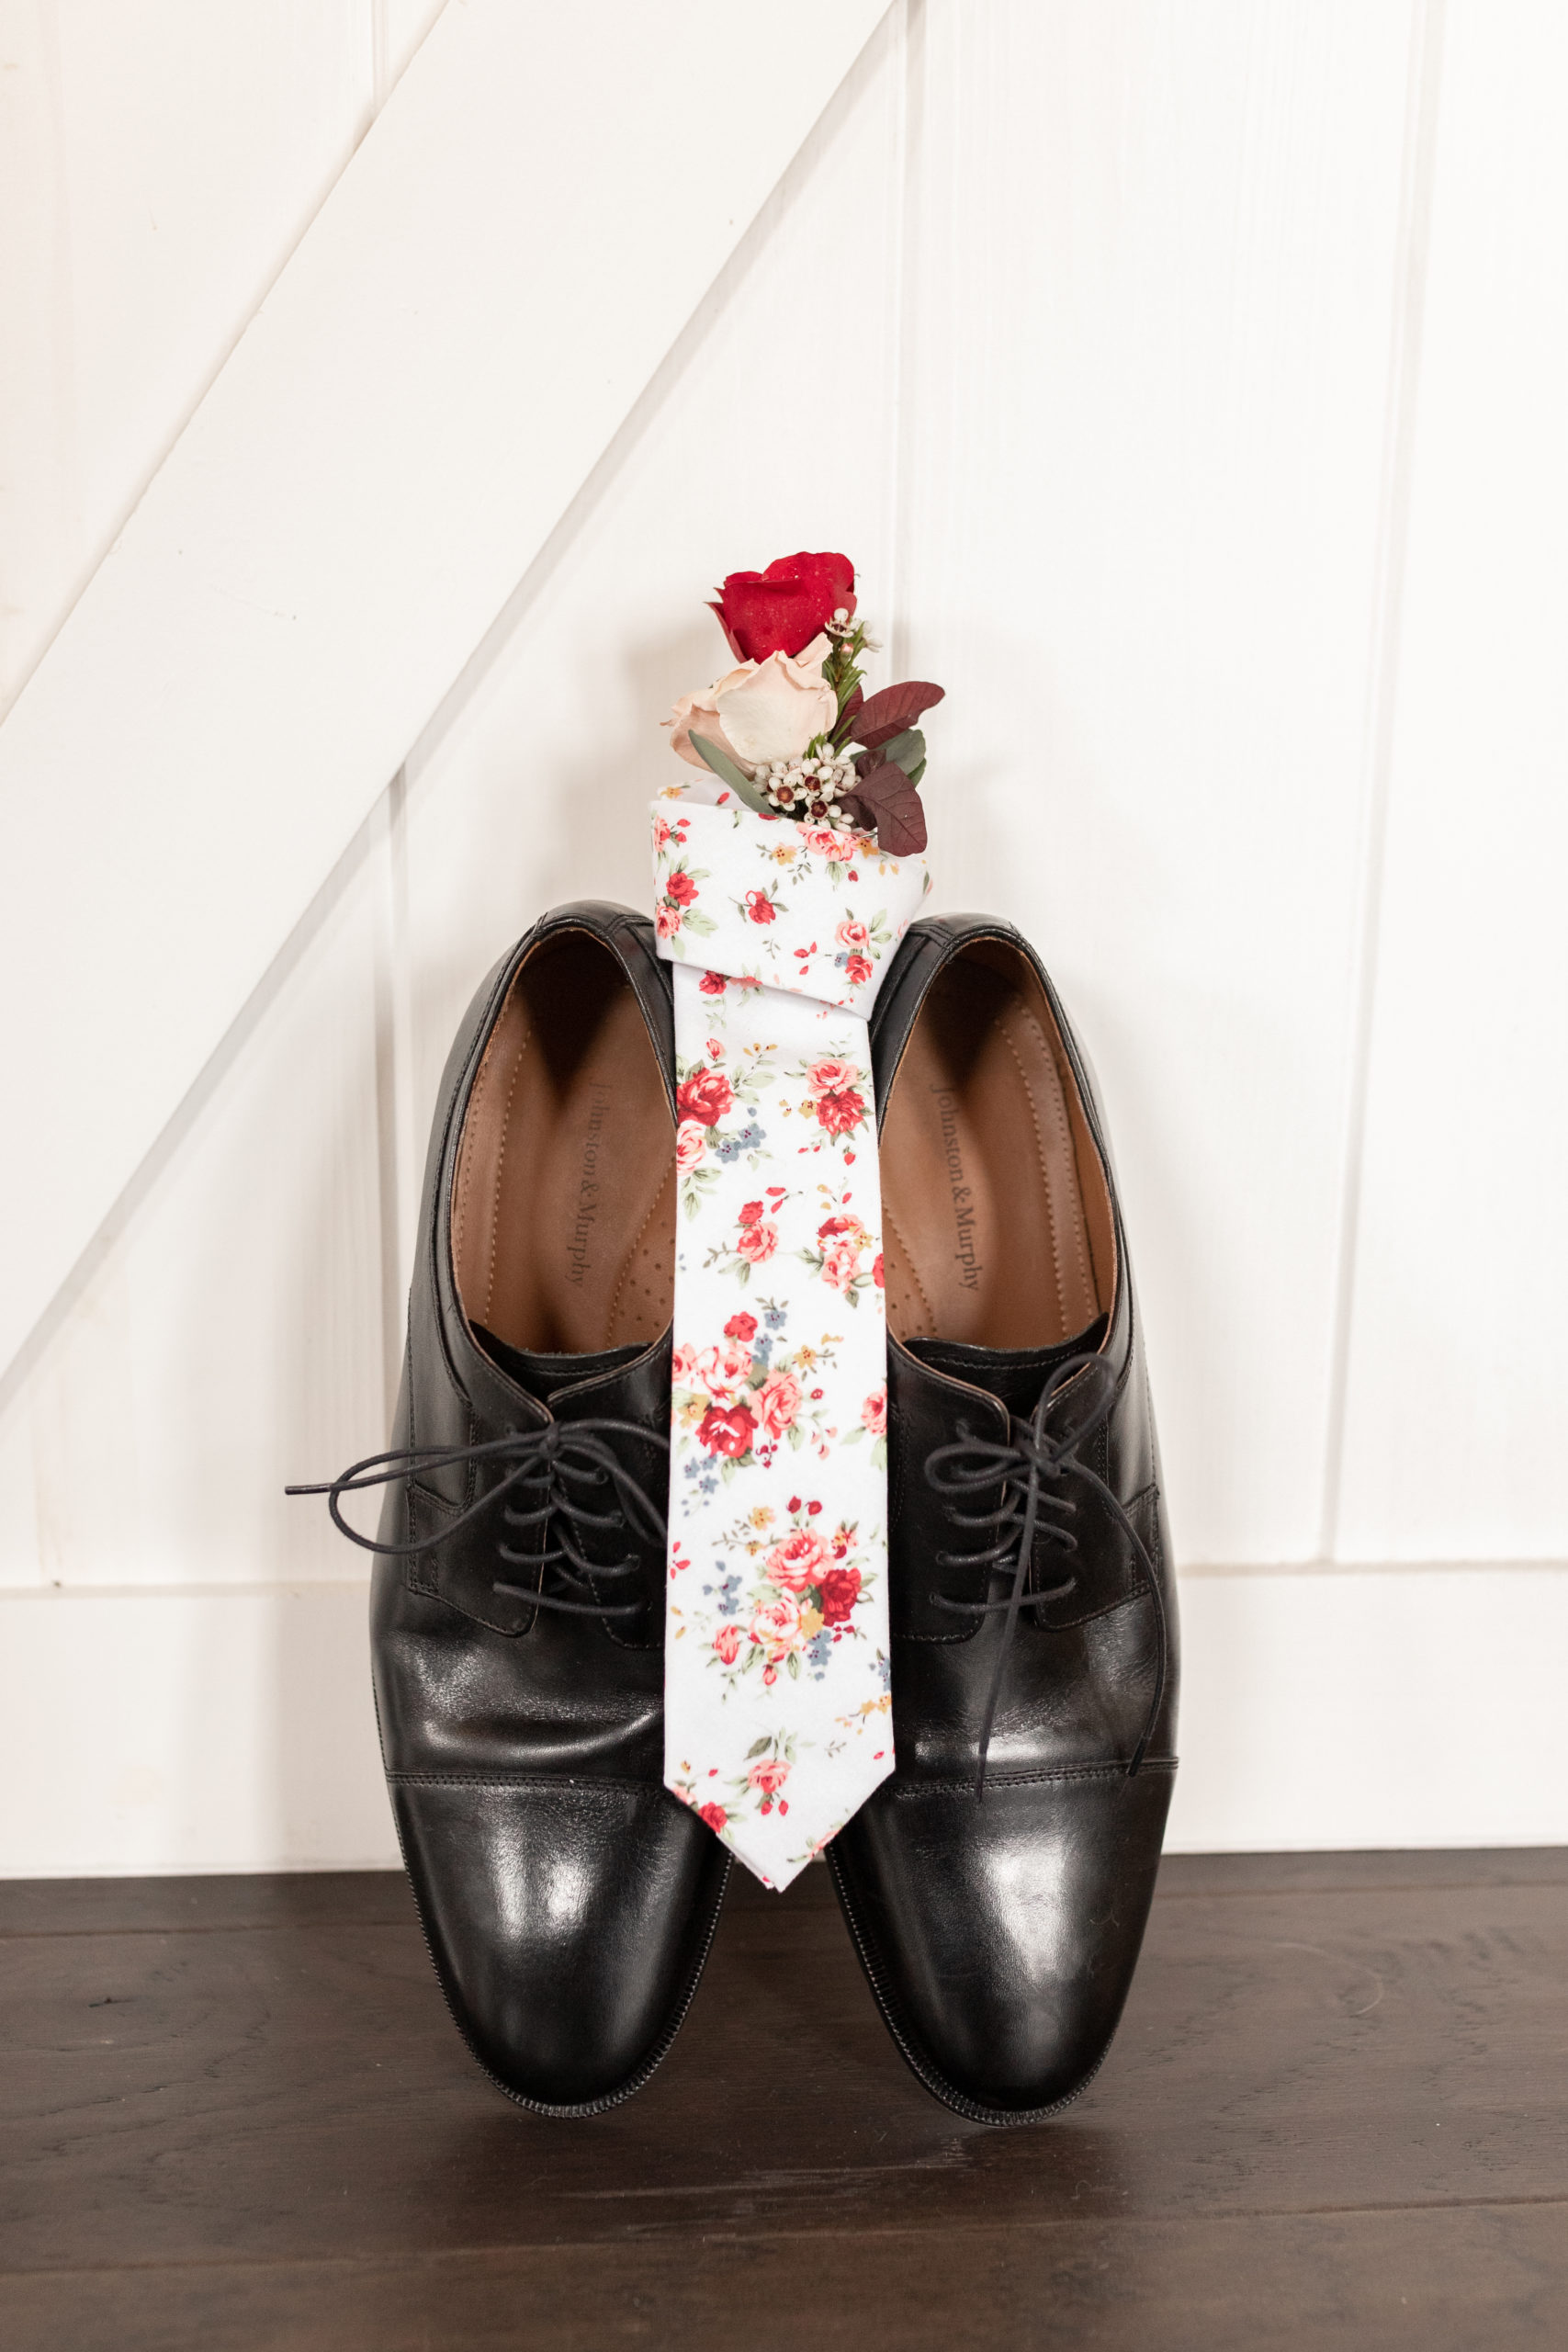 leather shoes, pink flower tie, red rose boutonniere,southern illinois photographer